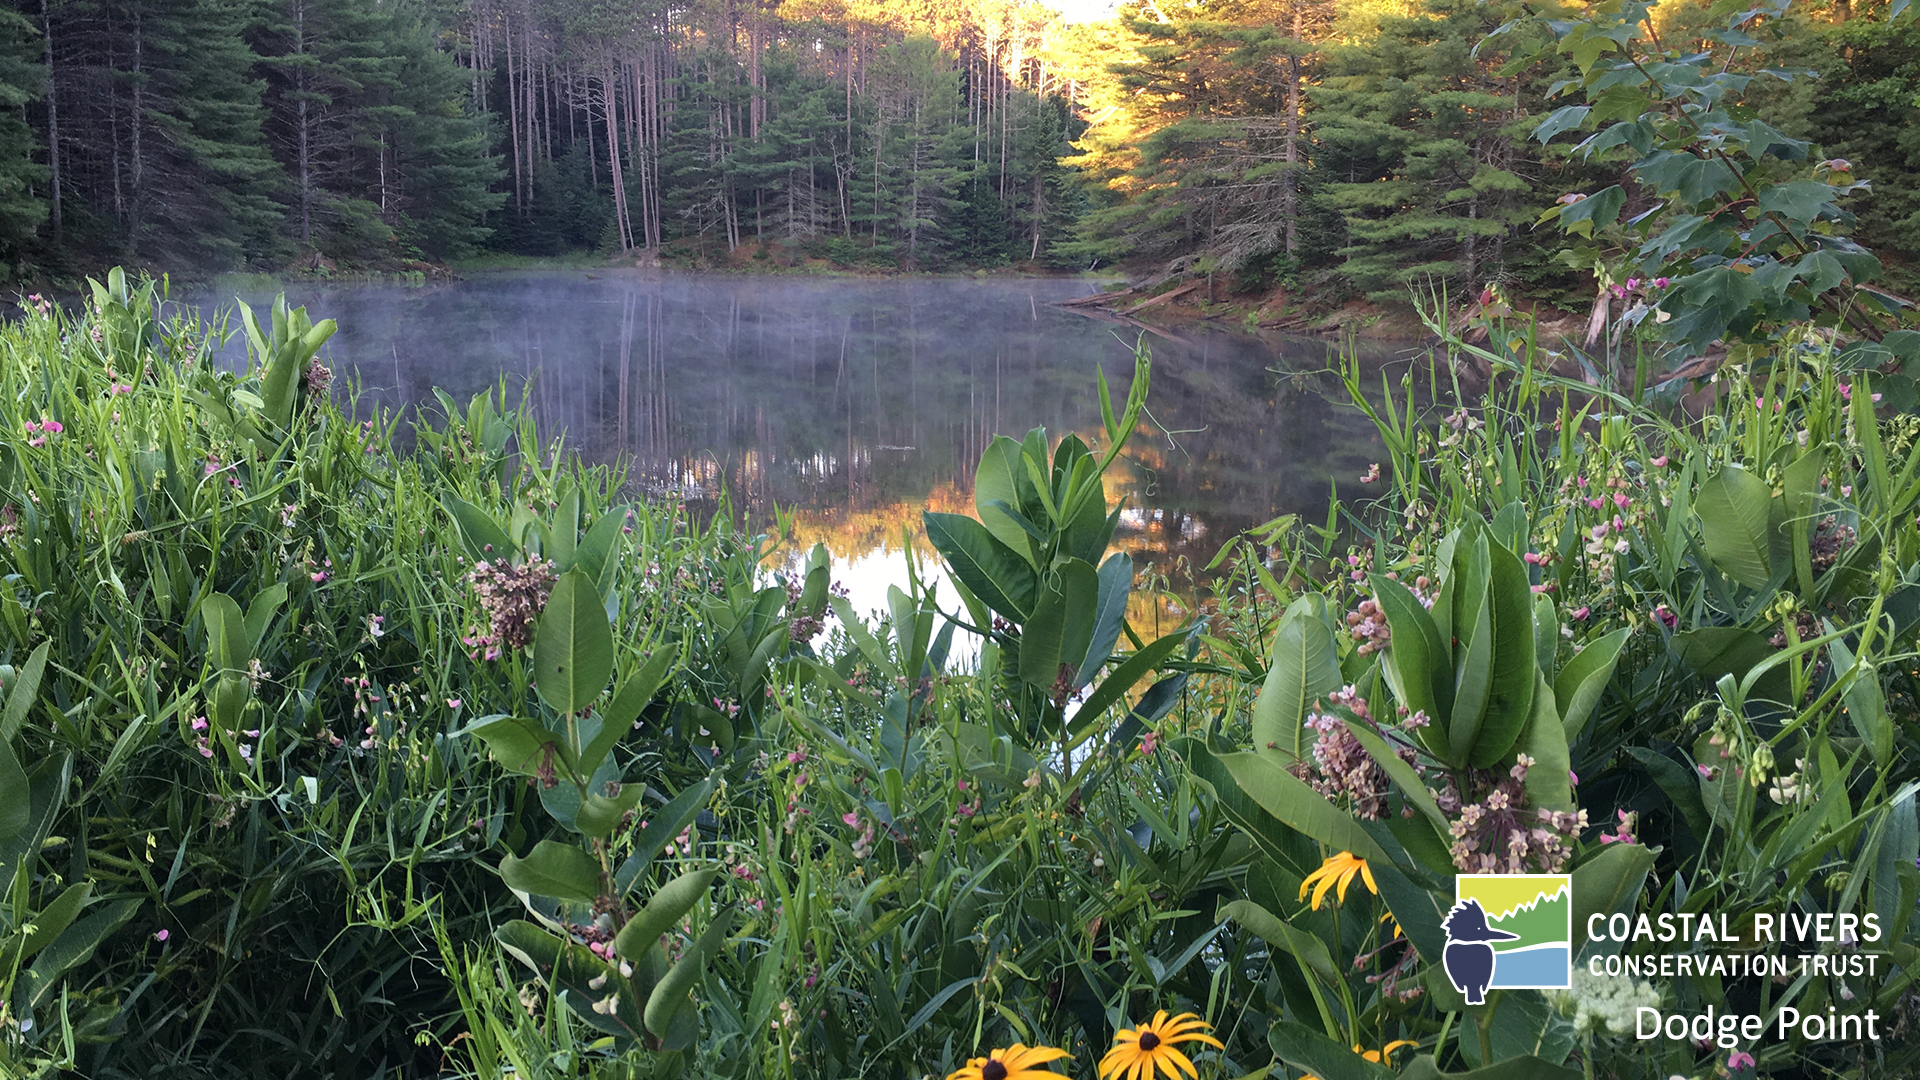 ice pond and flowers at Dodge Point